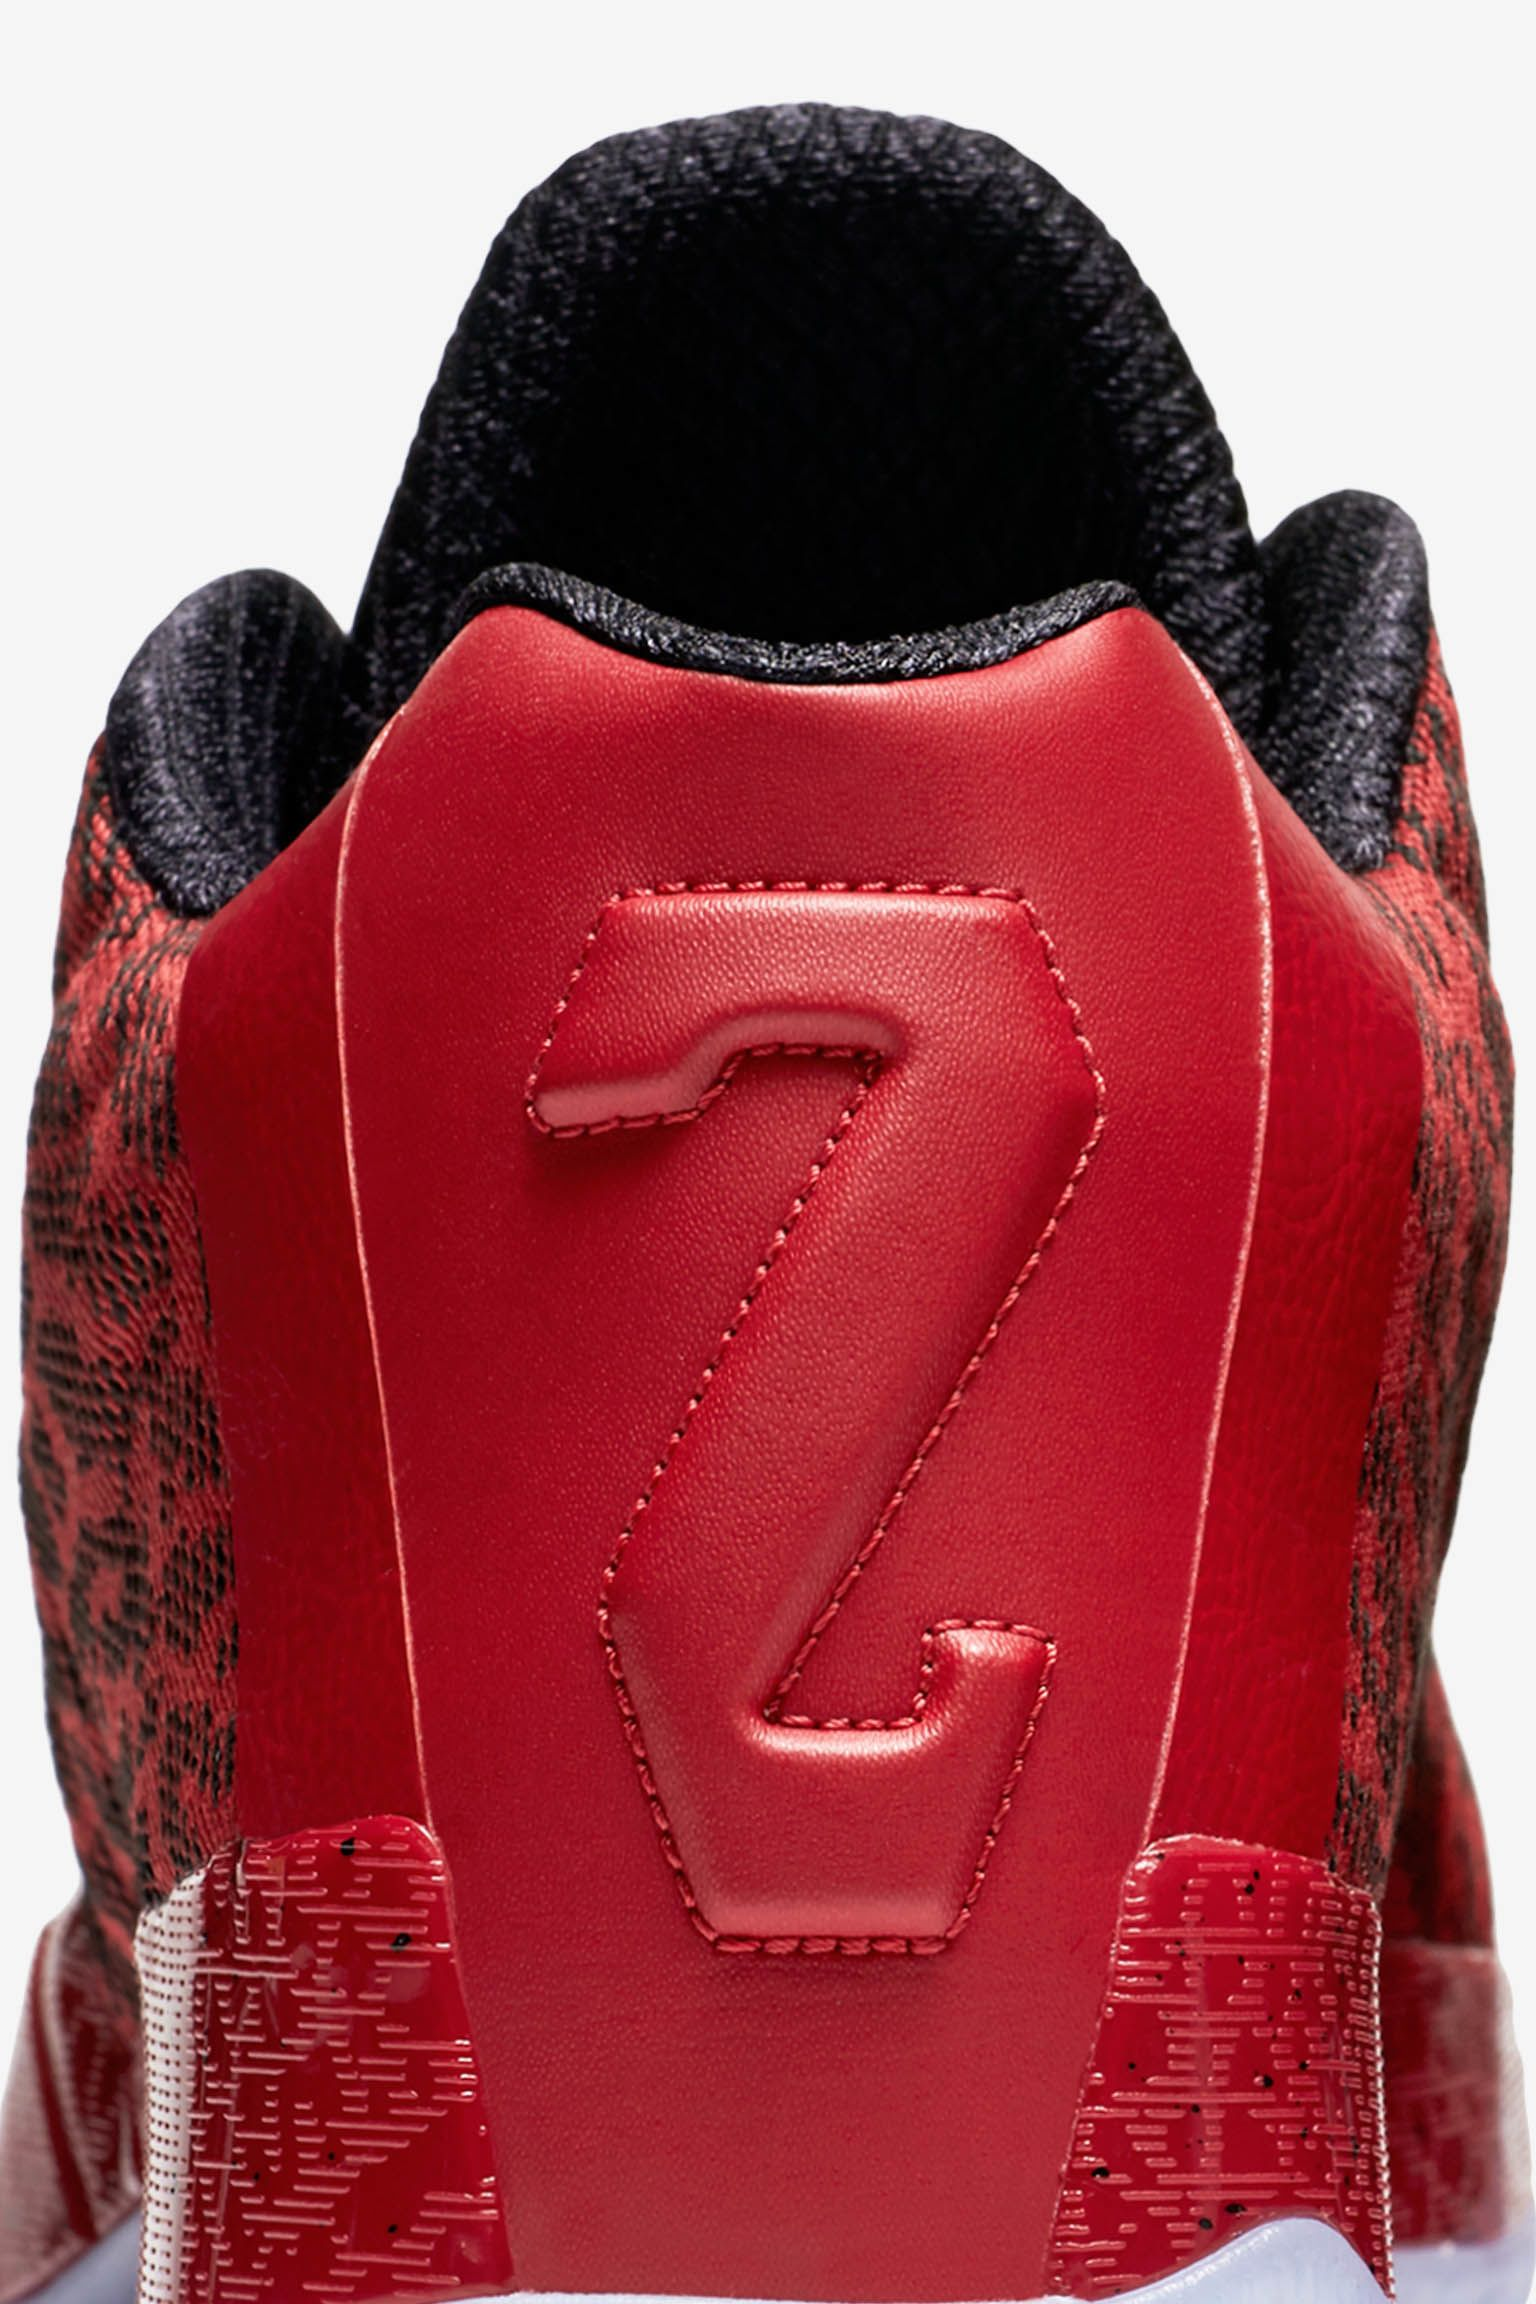 Air Jordan 29 Low 'Chi's Finest' Release Date